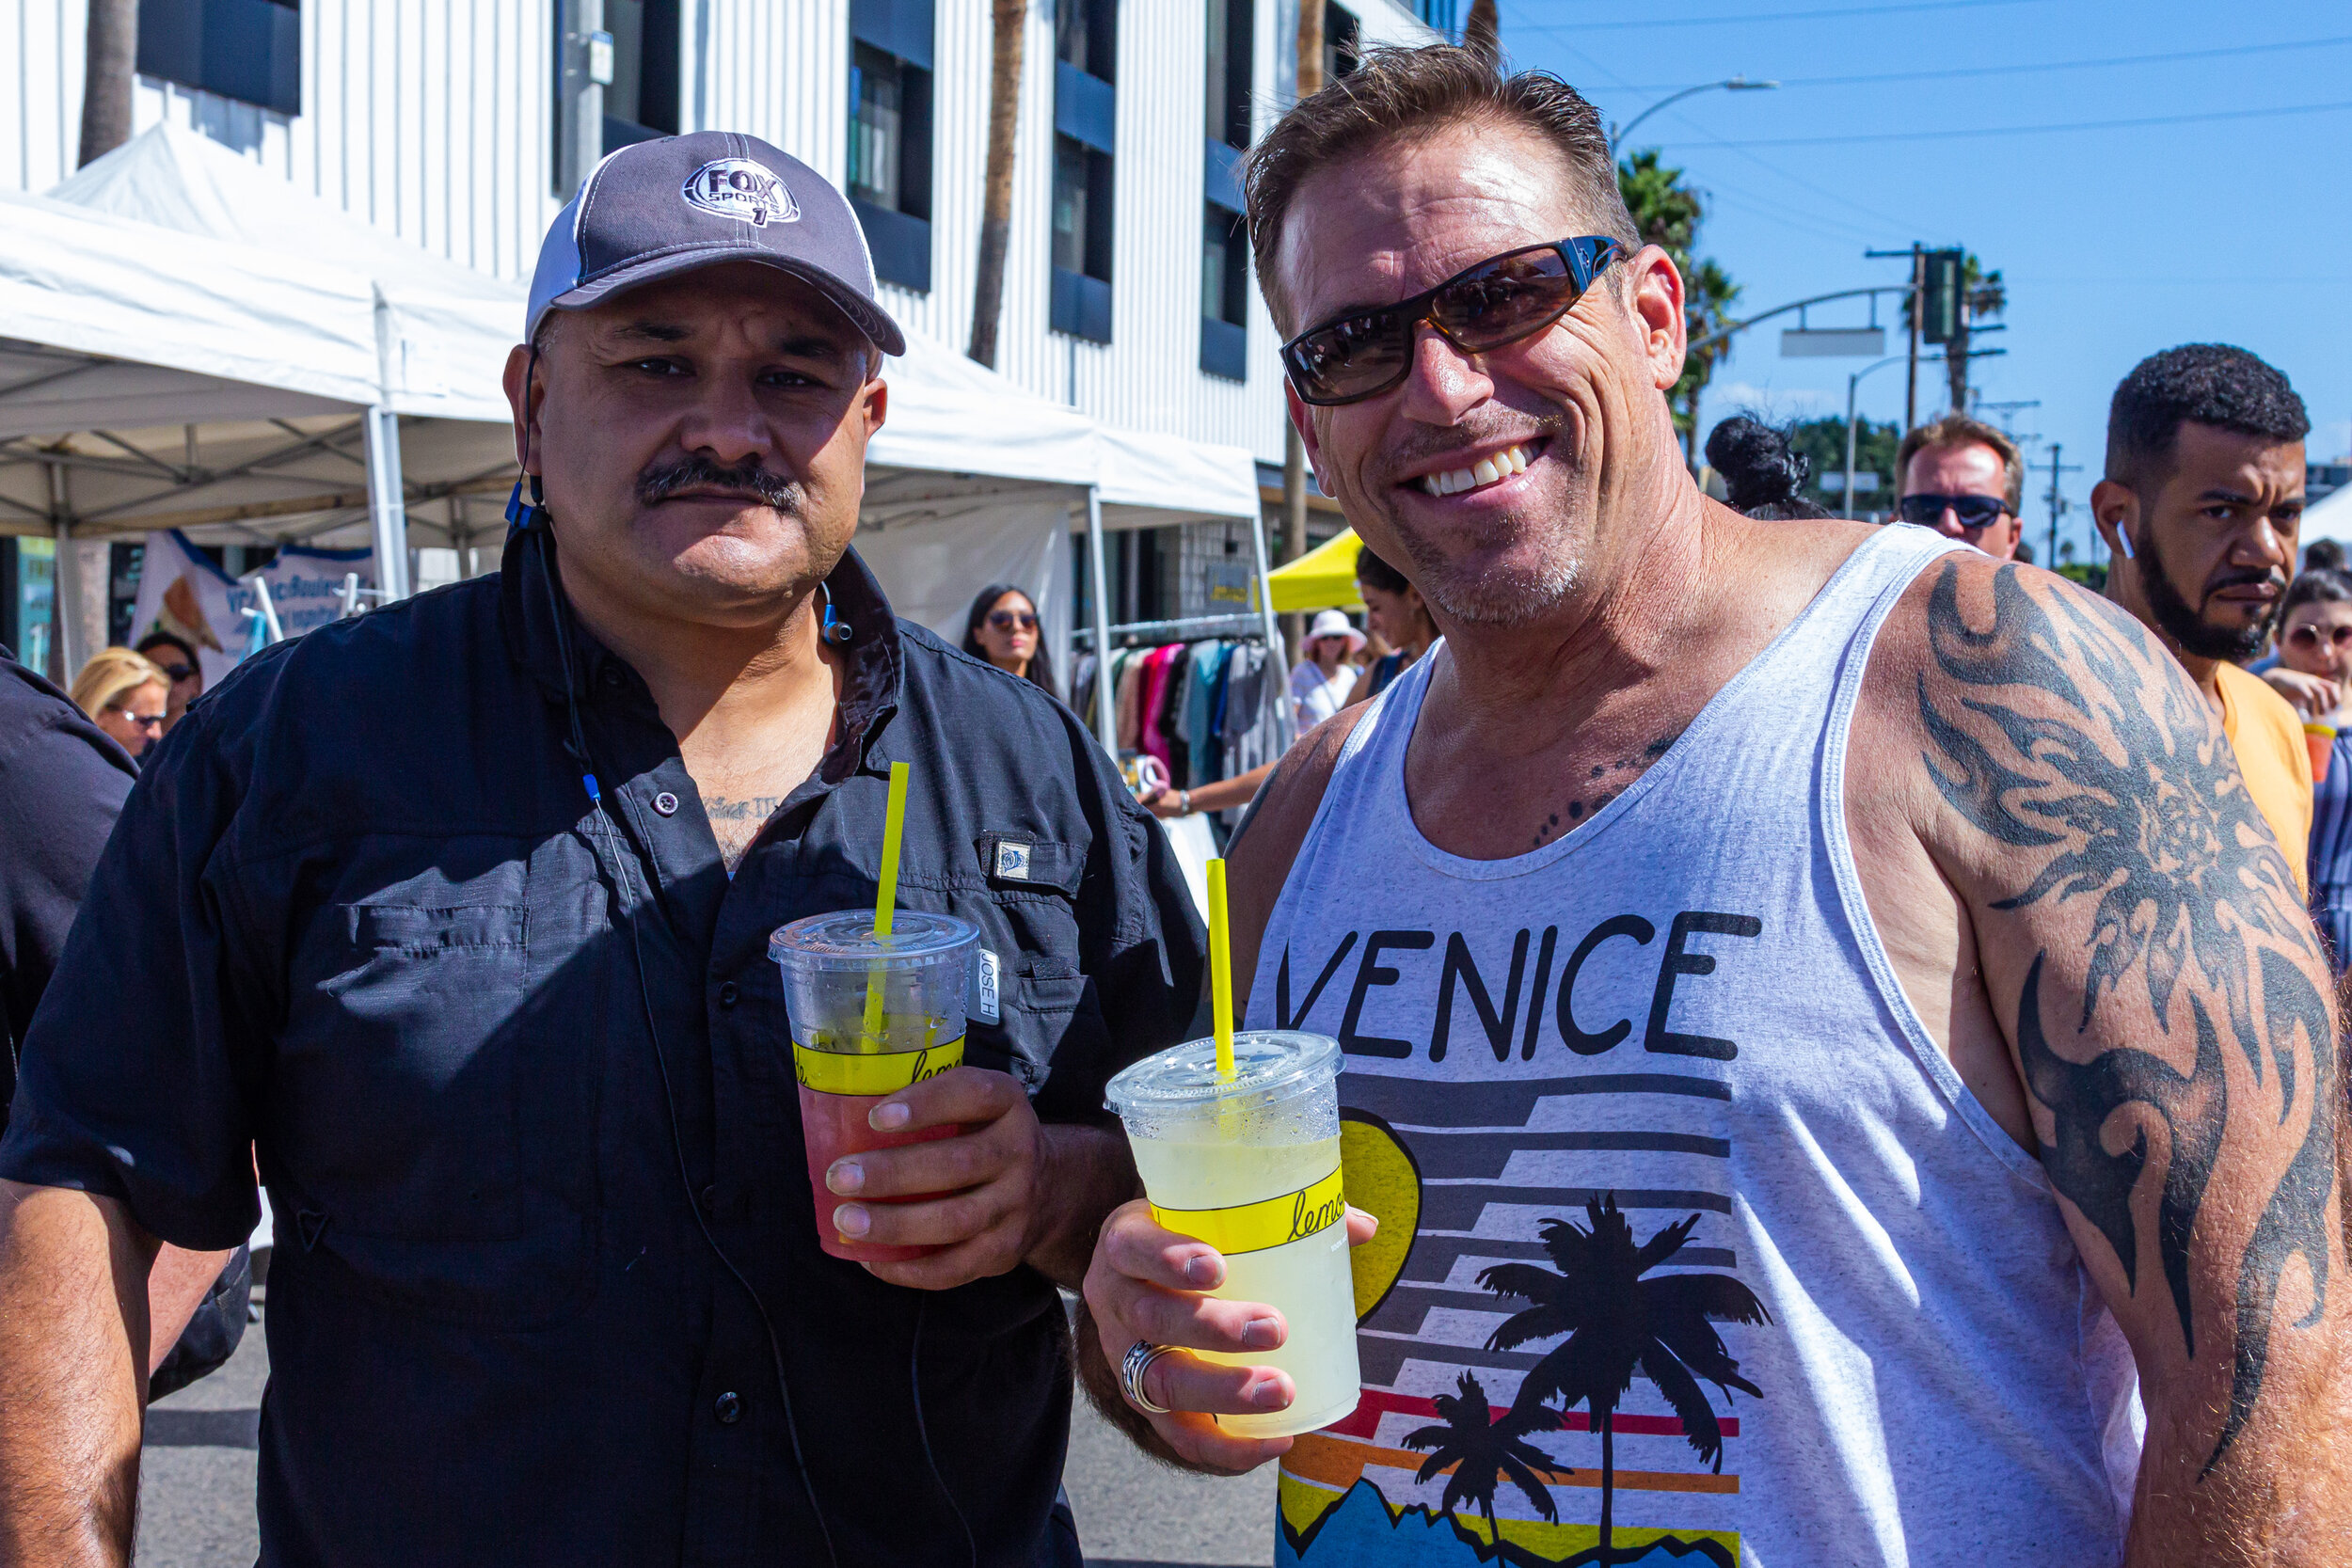 Venice locals, Jose Hernandex (left) and Brian McKinney, at the Abbott Kinney Festival, held the last Sunday in September for the past 35 years, on Abbott Kinney Blvd., Venice, California, on Sunday, September 29th 2019. (Marco Pallotti/The Corsair)